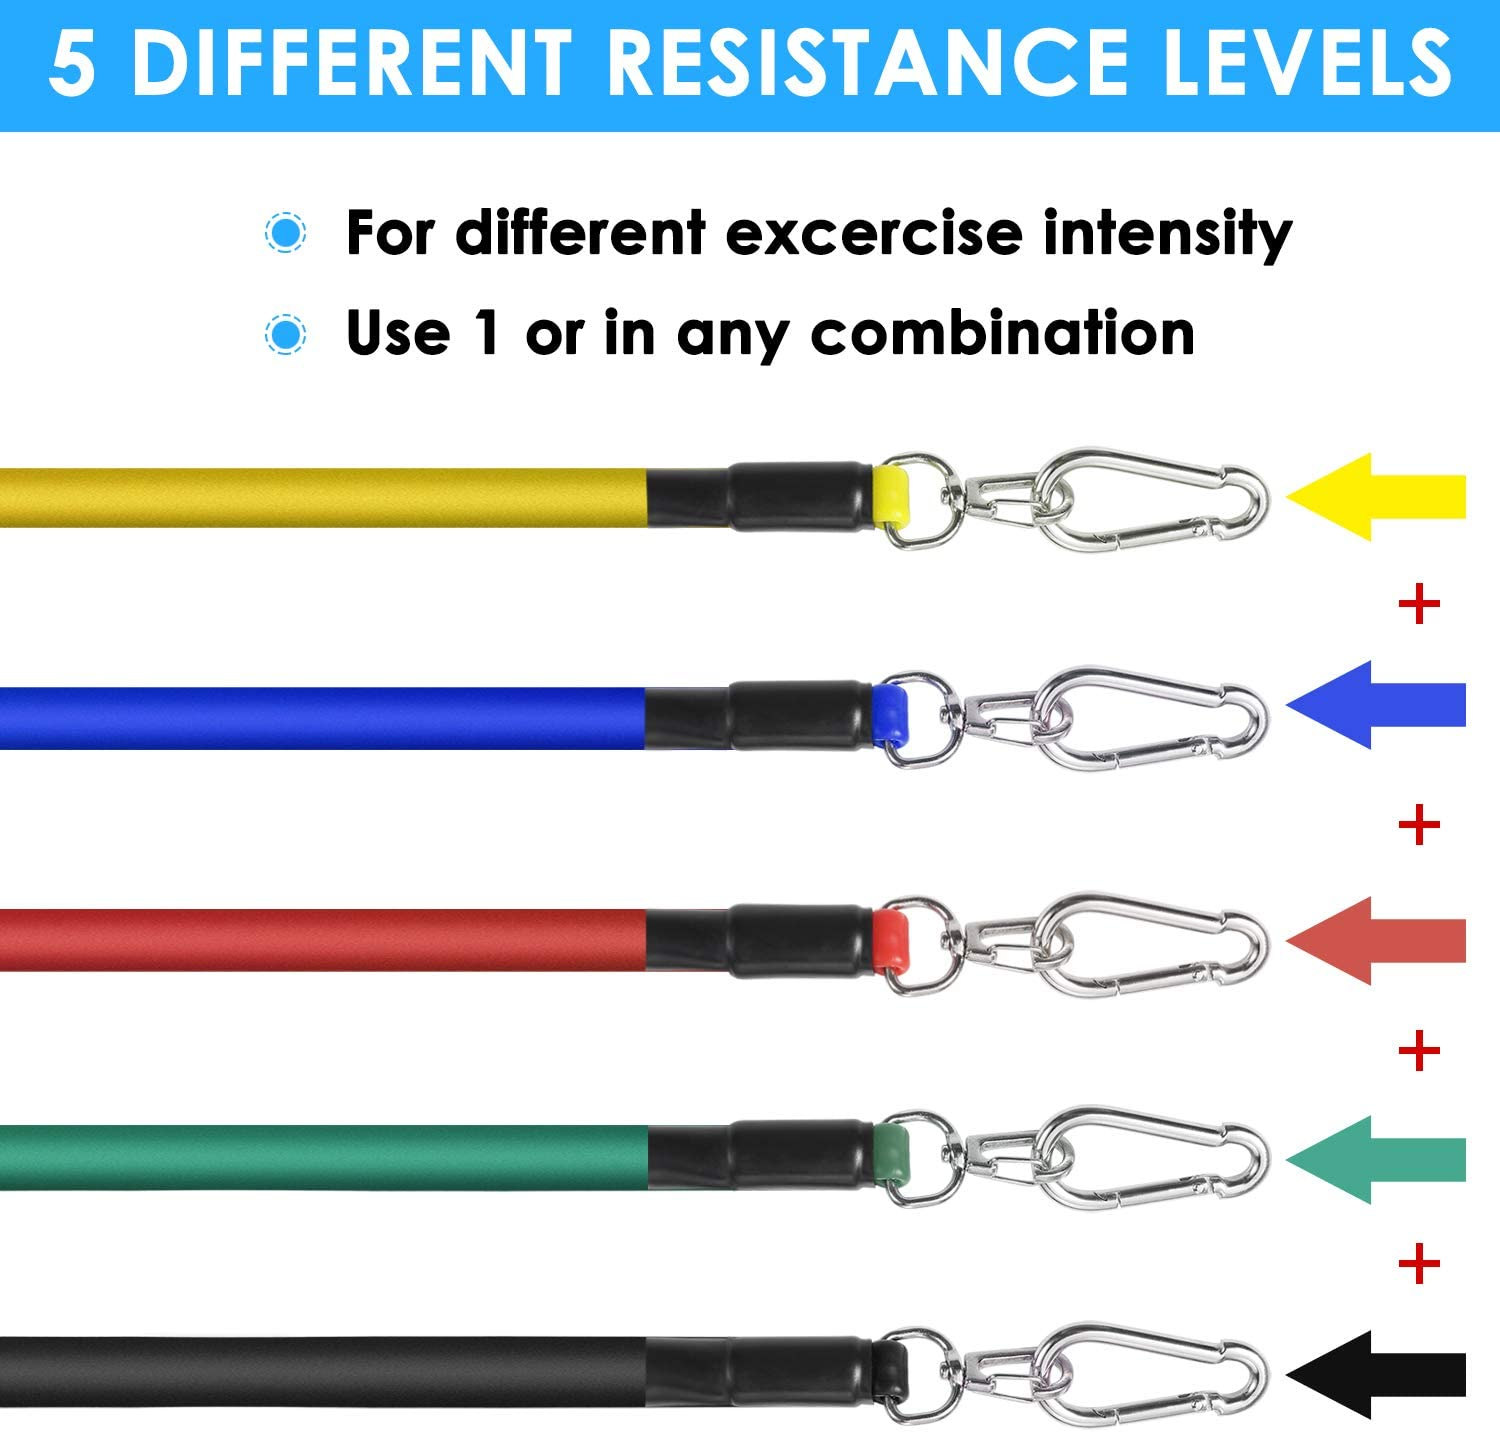 YJZIWX Exercise Resistance Bands with Handles,Ankle Straps Carry Bag Great for Resistance Training,Fabric Resistance Bands for Beginners,Hip Bands Workout Bands,Stretch Fitness Home Set Door Anchor